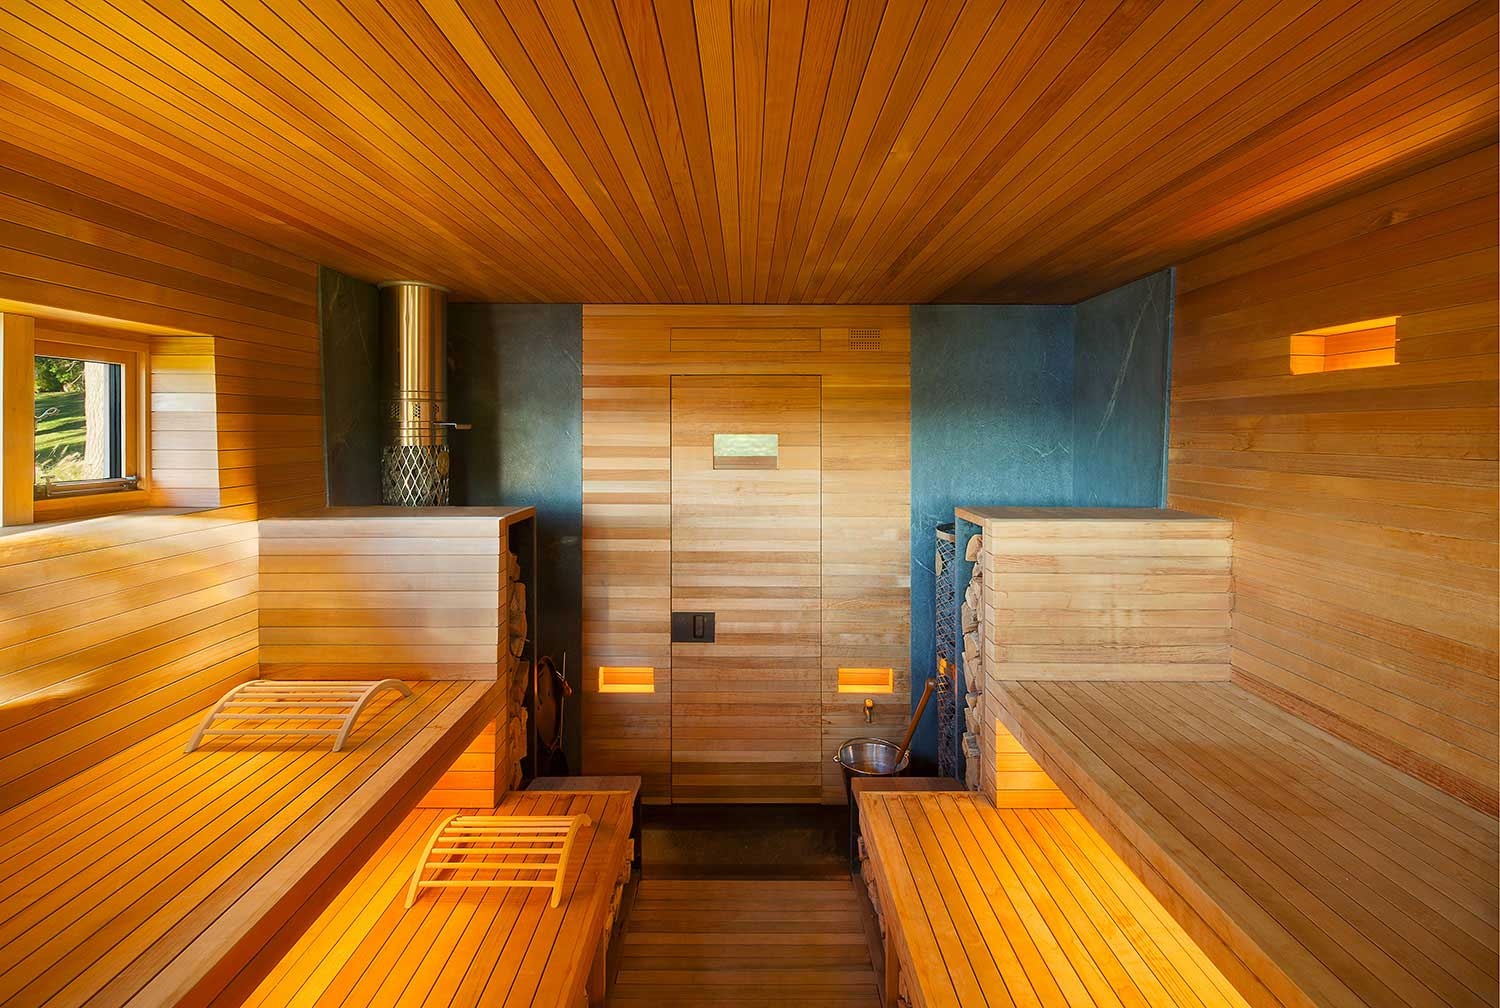 Wooden sauna welcomes guests to sweat out the stress of for Hudson valley interior design